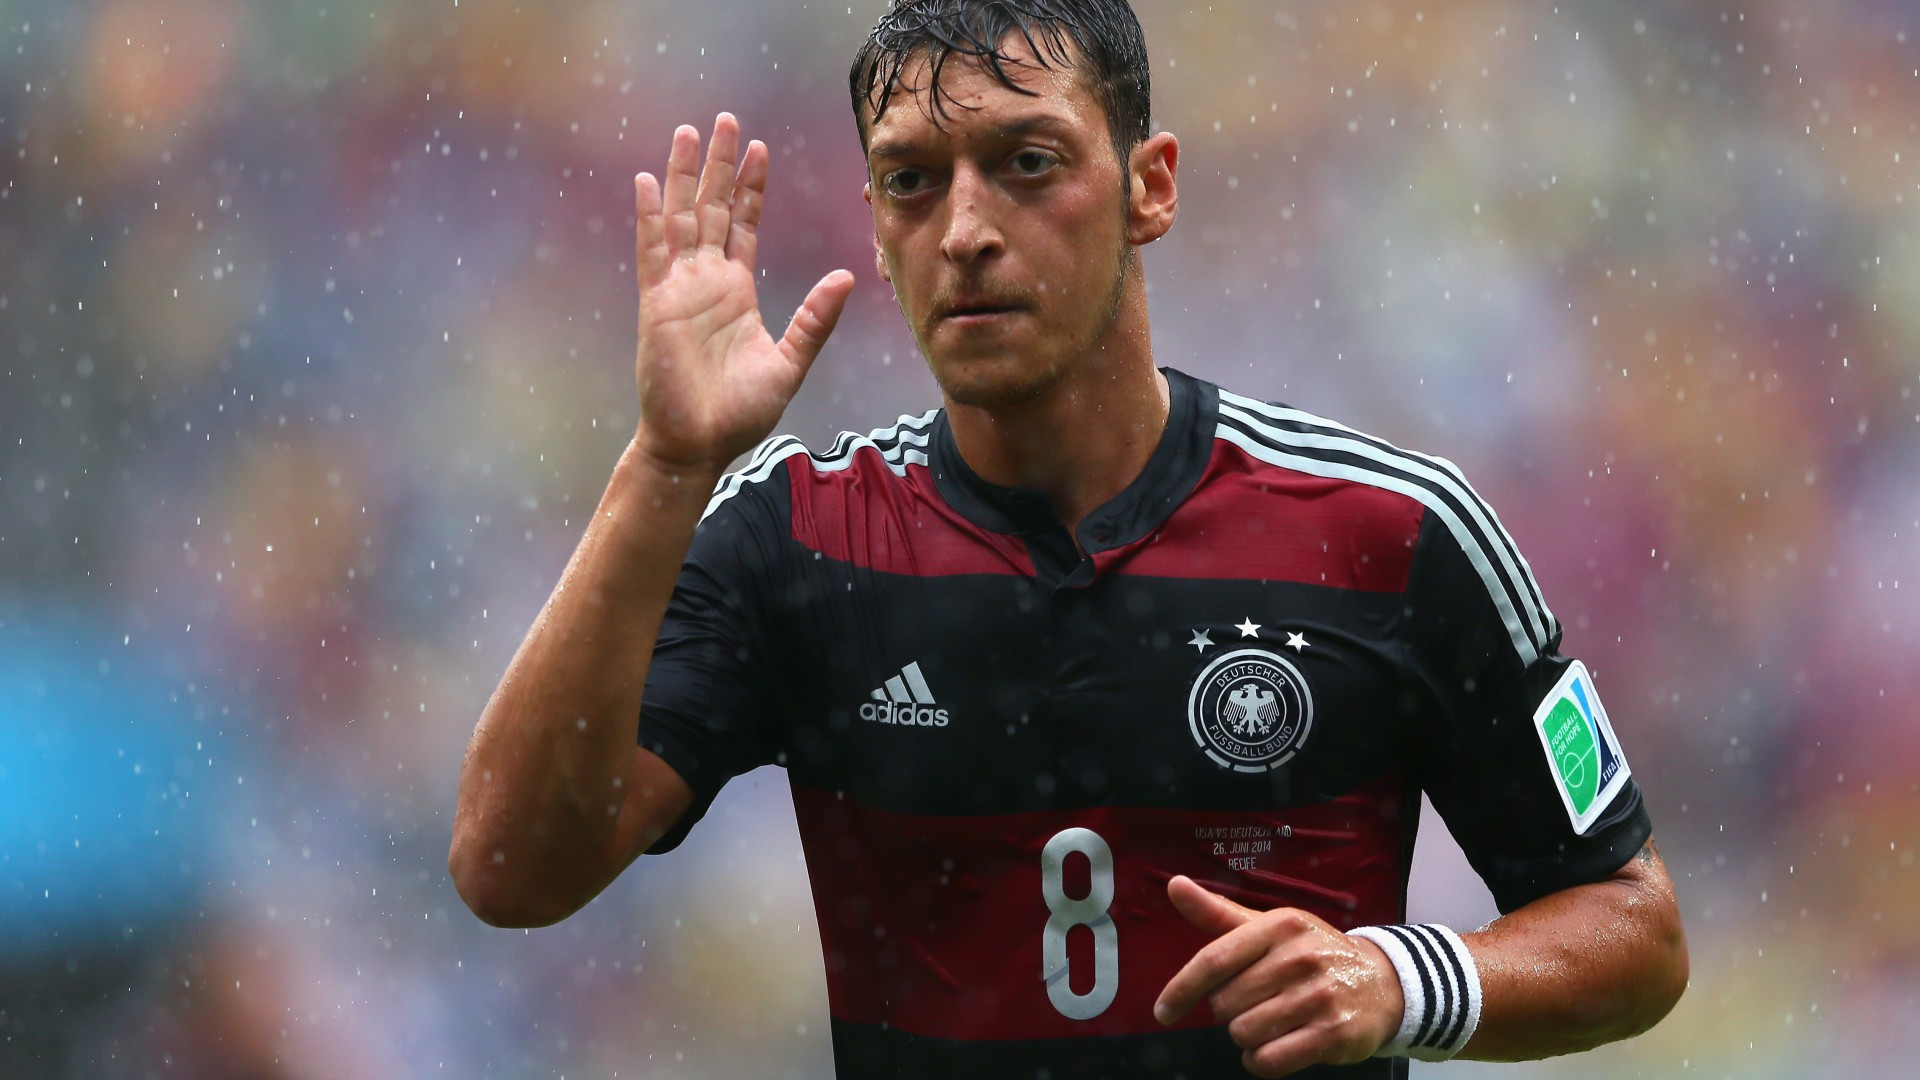 Mesut Ozil Wallpapers Images Photos Pictures Backgrounds